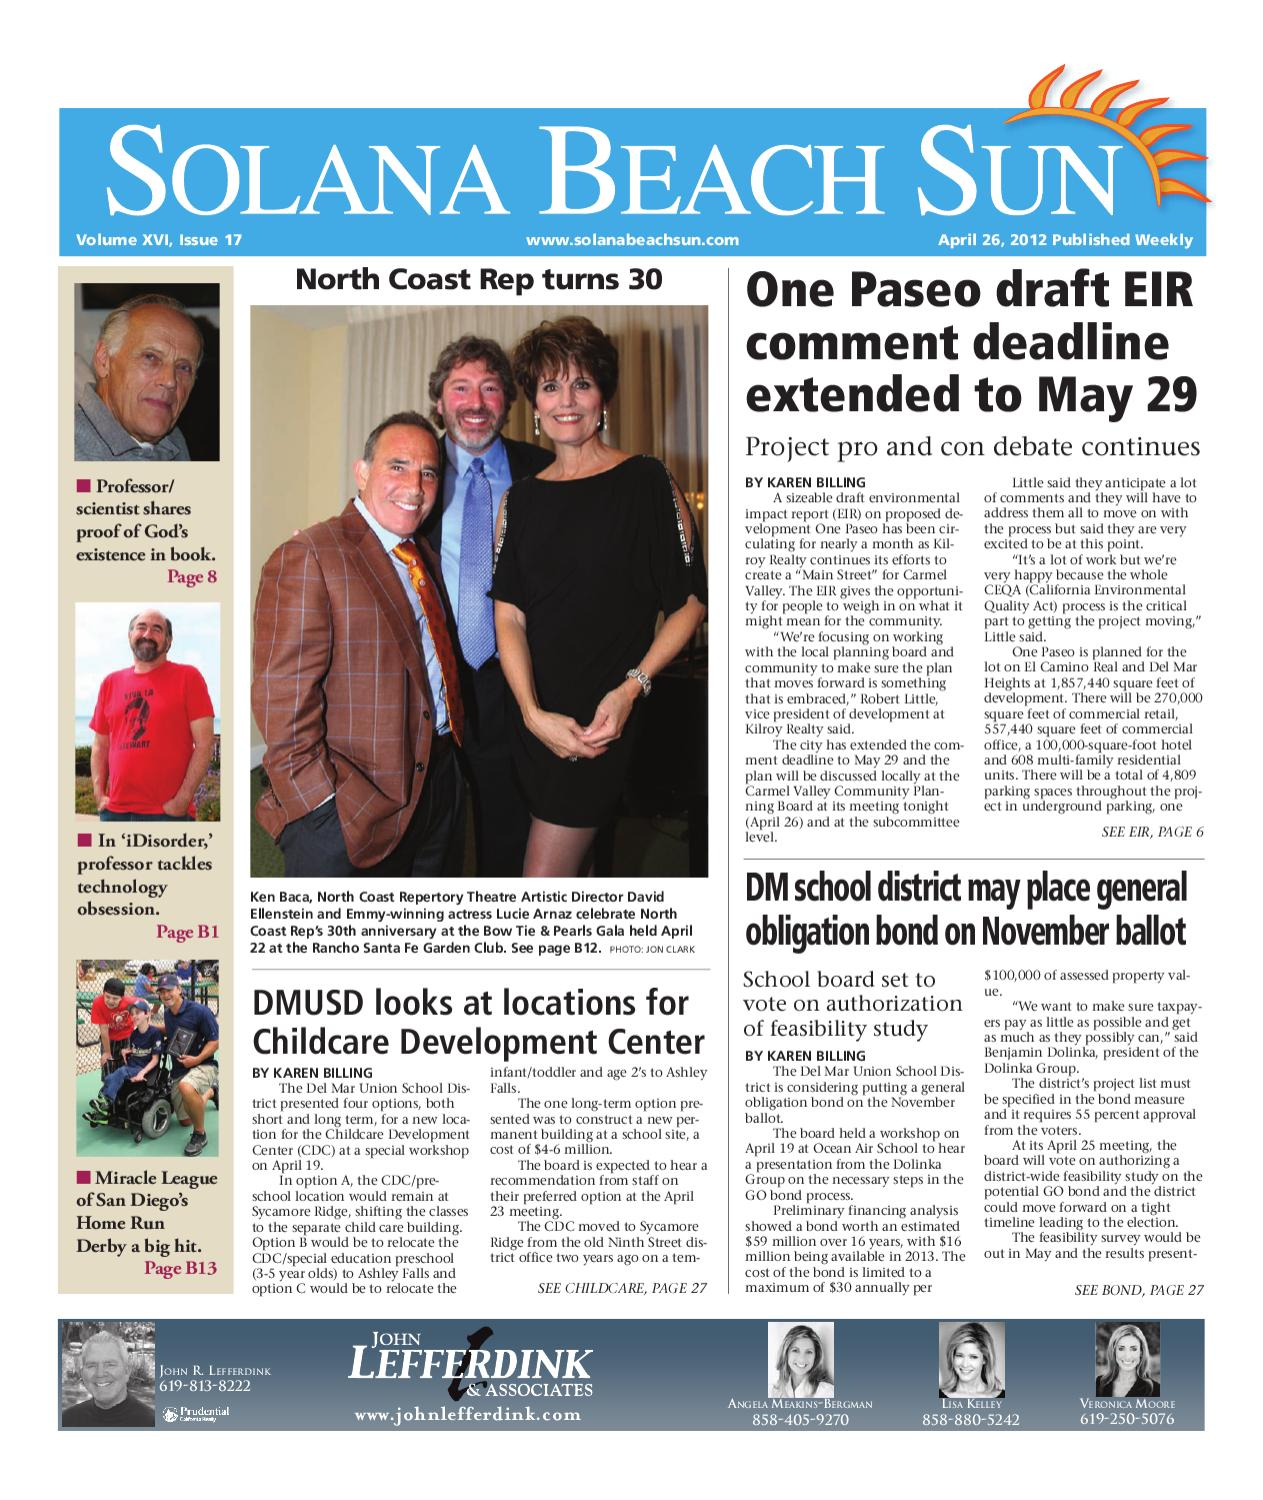 4 26 12 solana beach sun by mainstreet media issuu